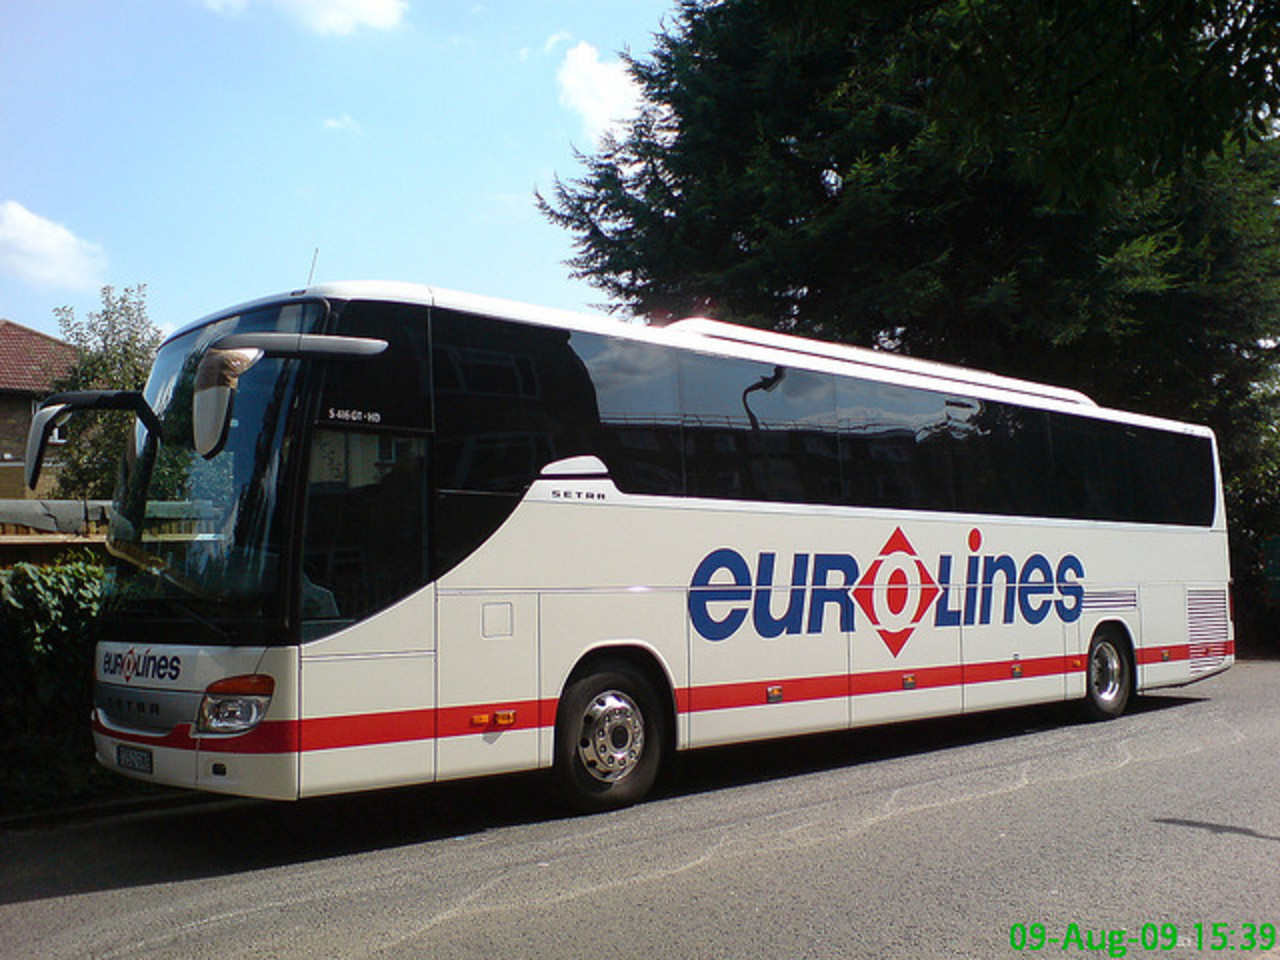 EuroLines | Flickr - Photo Sharing!